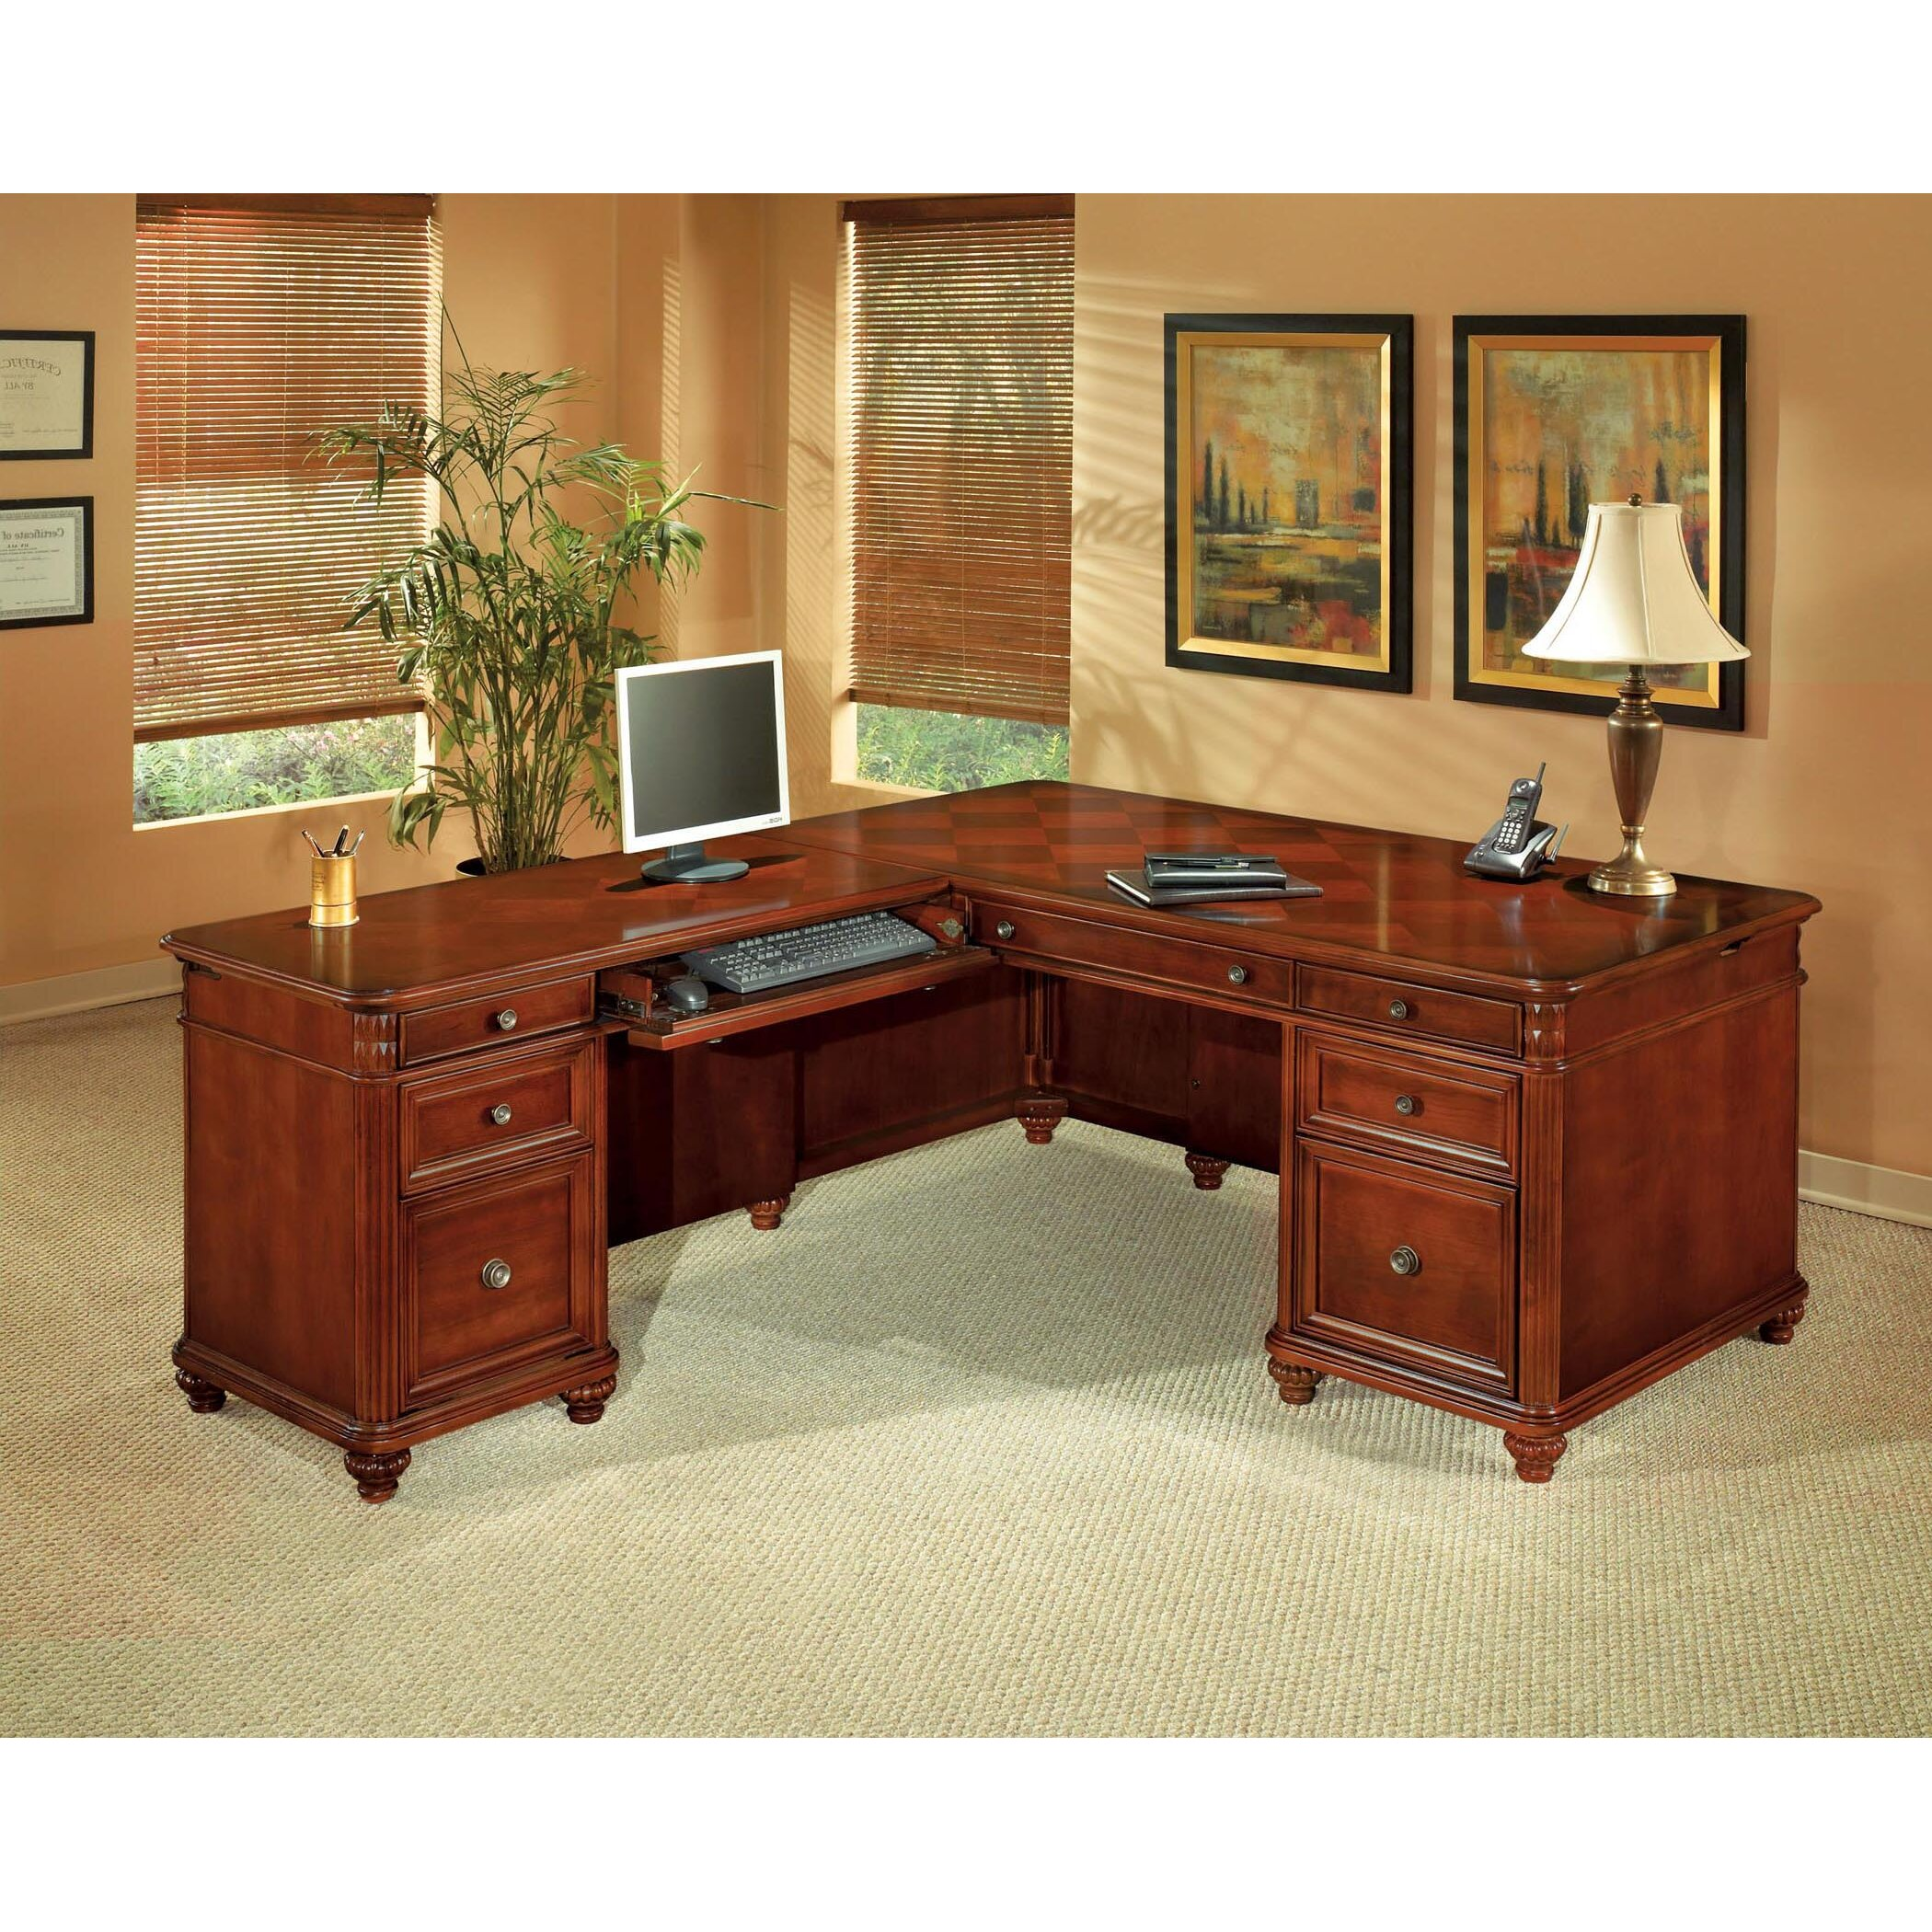 Flexsteel Contract Antigua Lshape Executive Desk With. Ikea Standing Desk Legs. Executive Desk Clocks. Bluestone Coffee Table. Large Computer Desk. Platform Bed With Drawers King. Game Coffee Table. Rubber Desk Mat. Front Desk Coordinator Job Description